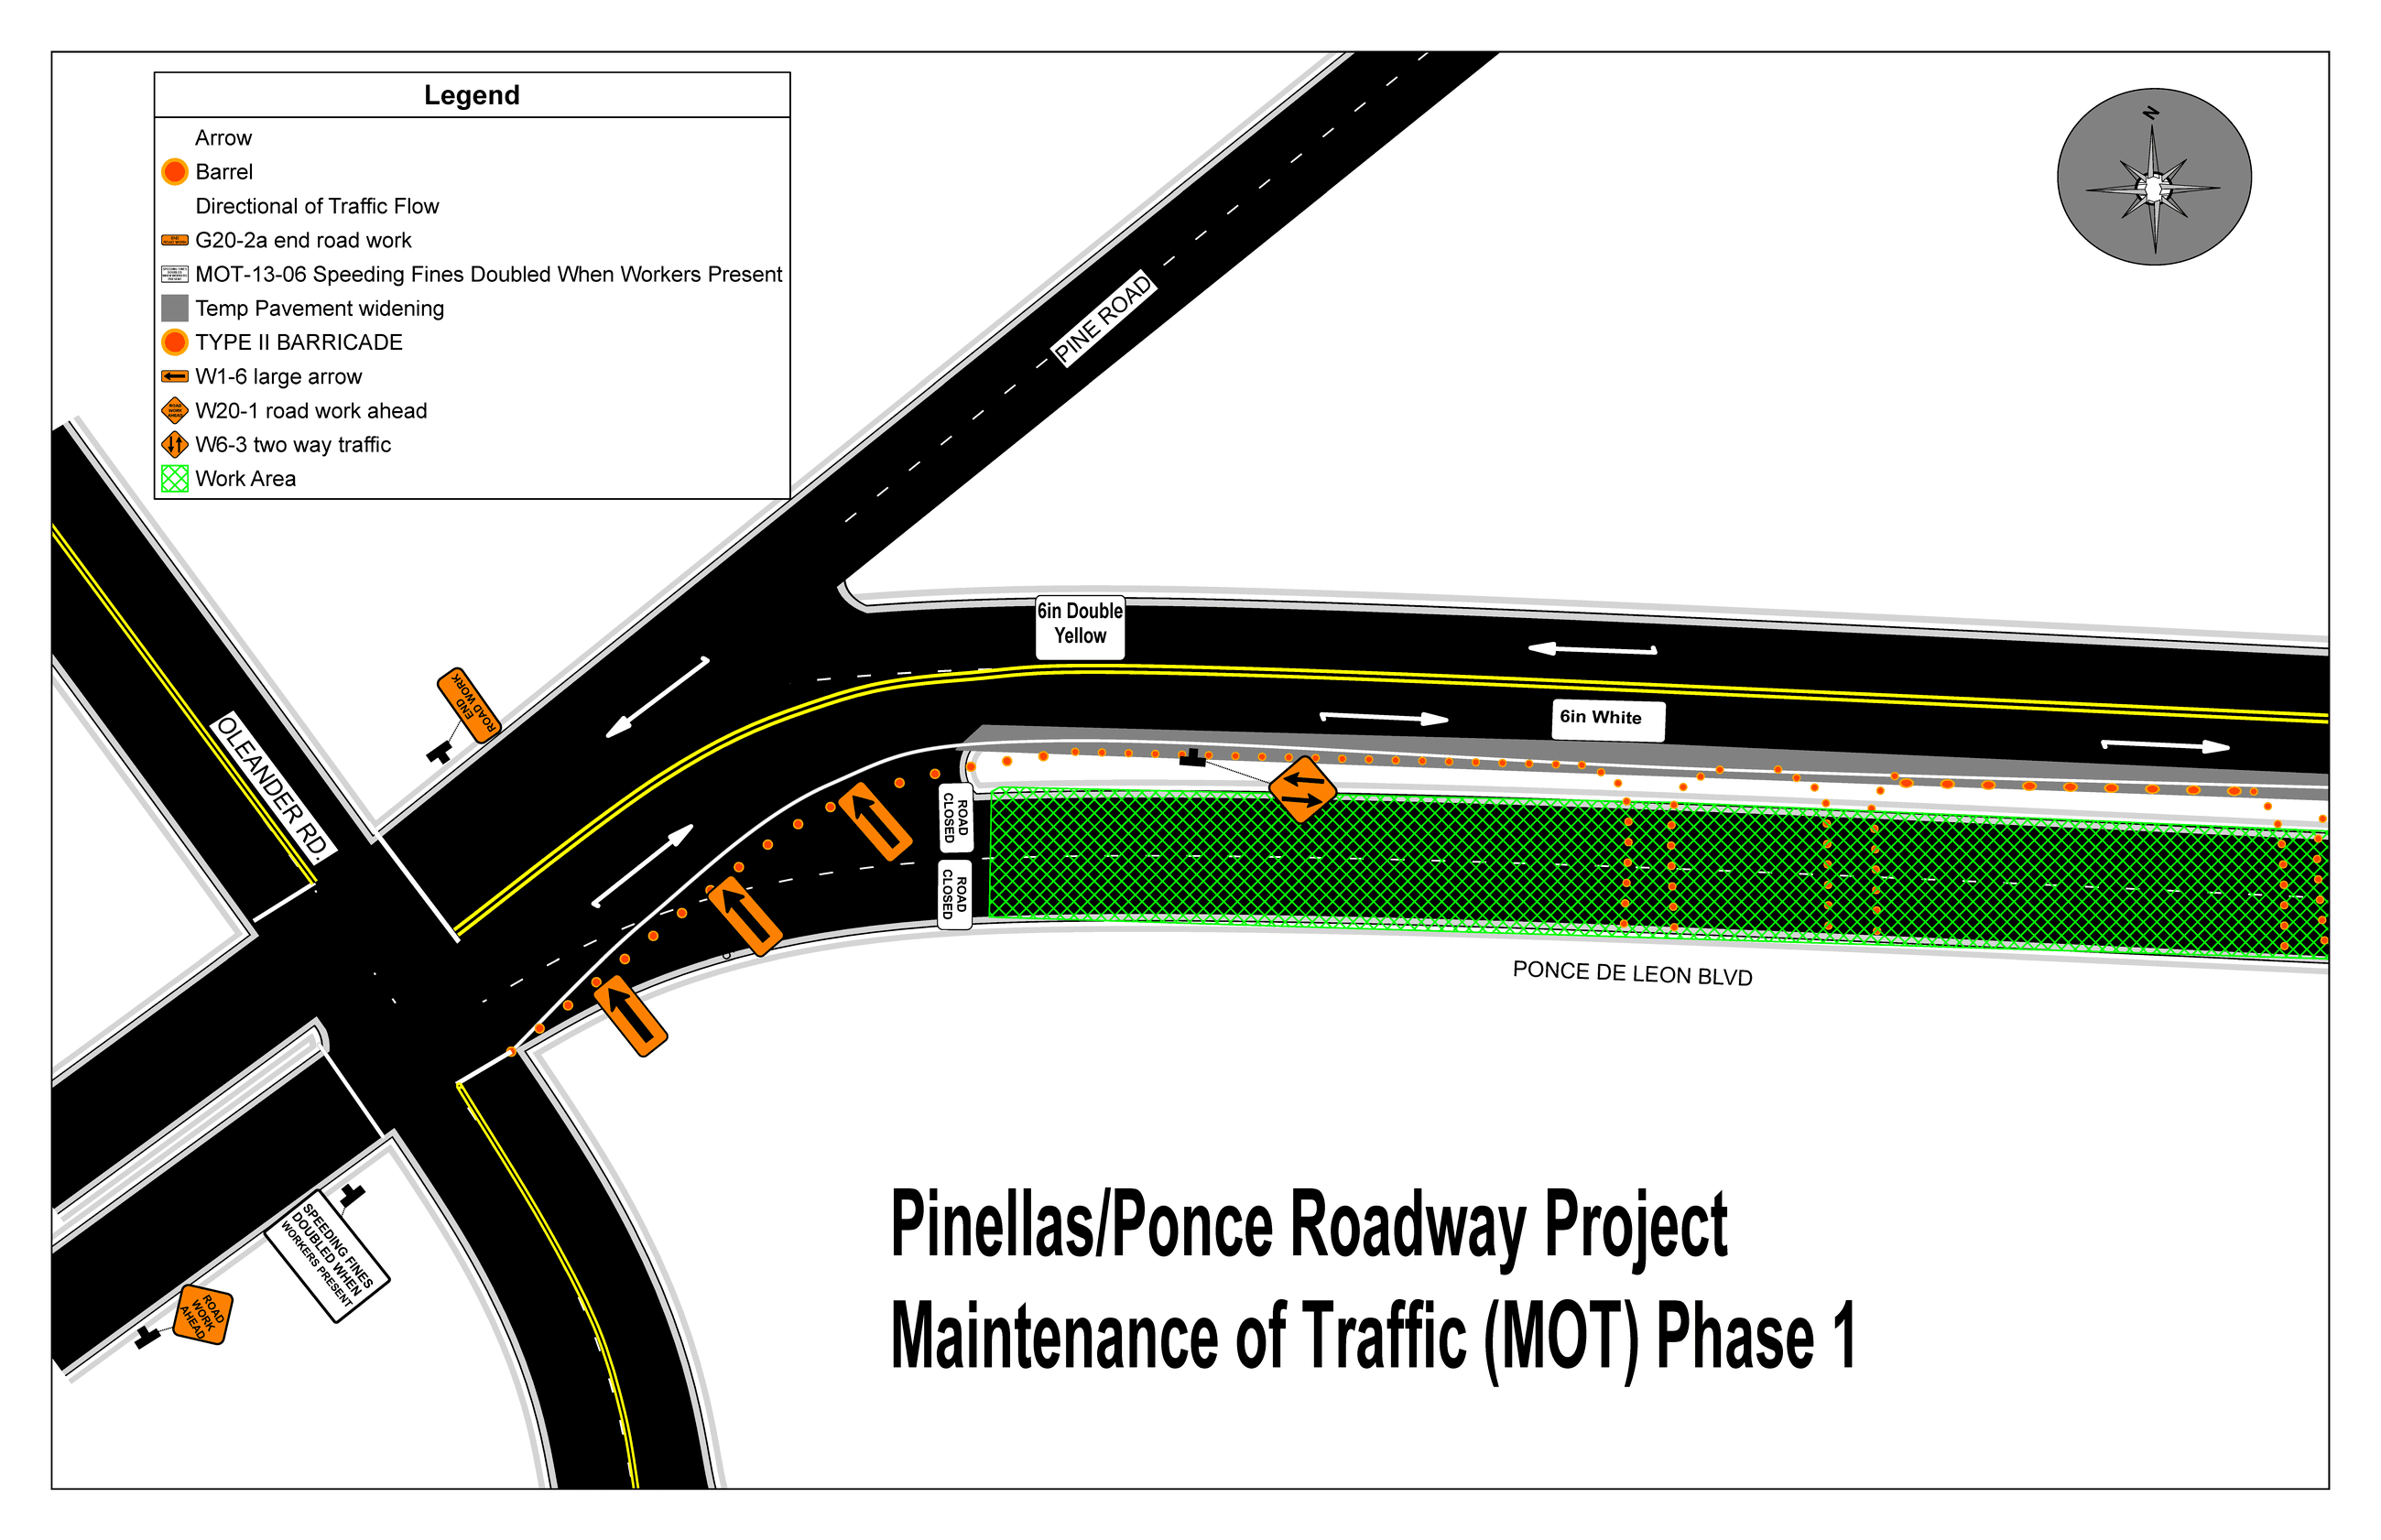 Map  of Oleander, Ponce, and Pine intersection showing a closure of the south side of Ponce, east of